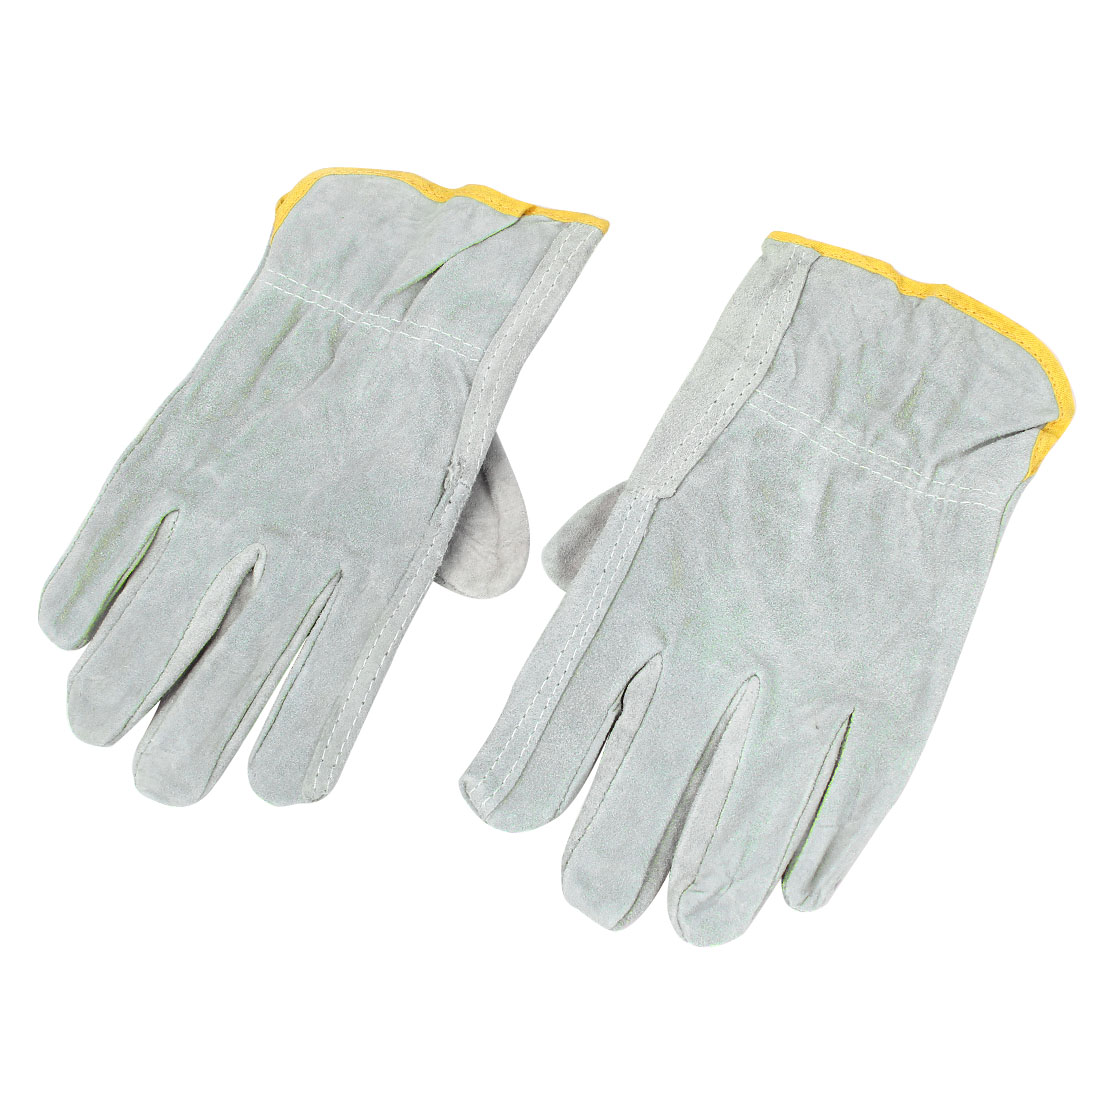 Pair Faux Suede Full Finger Welding Protecting Gloves Gray